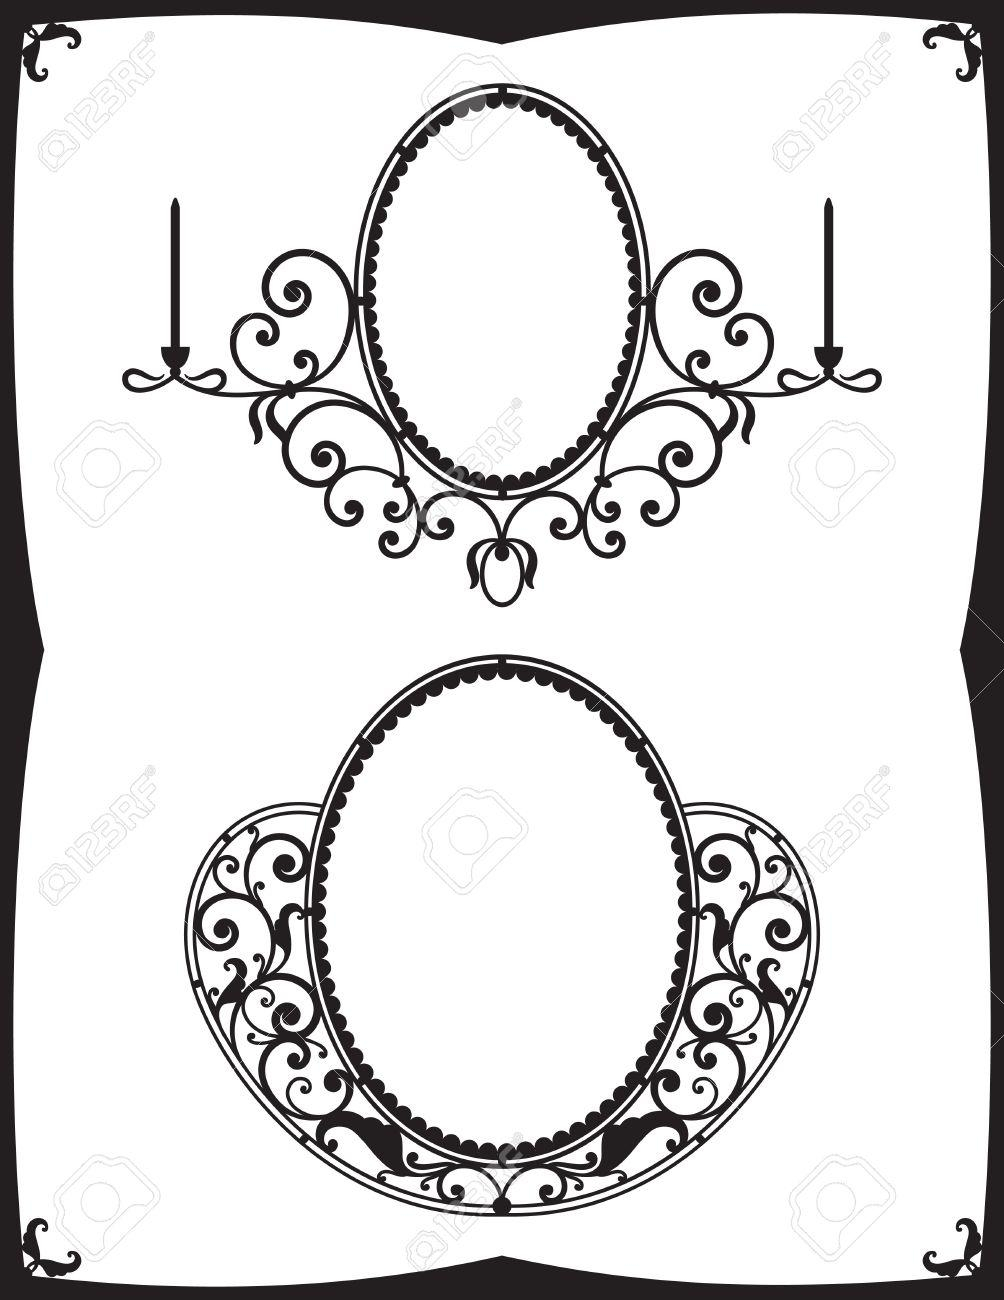 Two Wrought Iron Frames For Mirrors Royalty Free Cliparts, Vectors Within Black Wrought Iron Mirrors (Image 14 of 20)